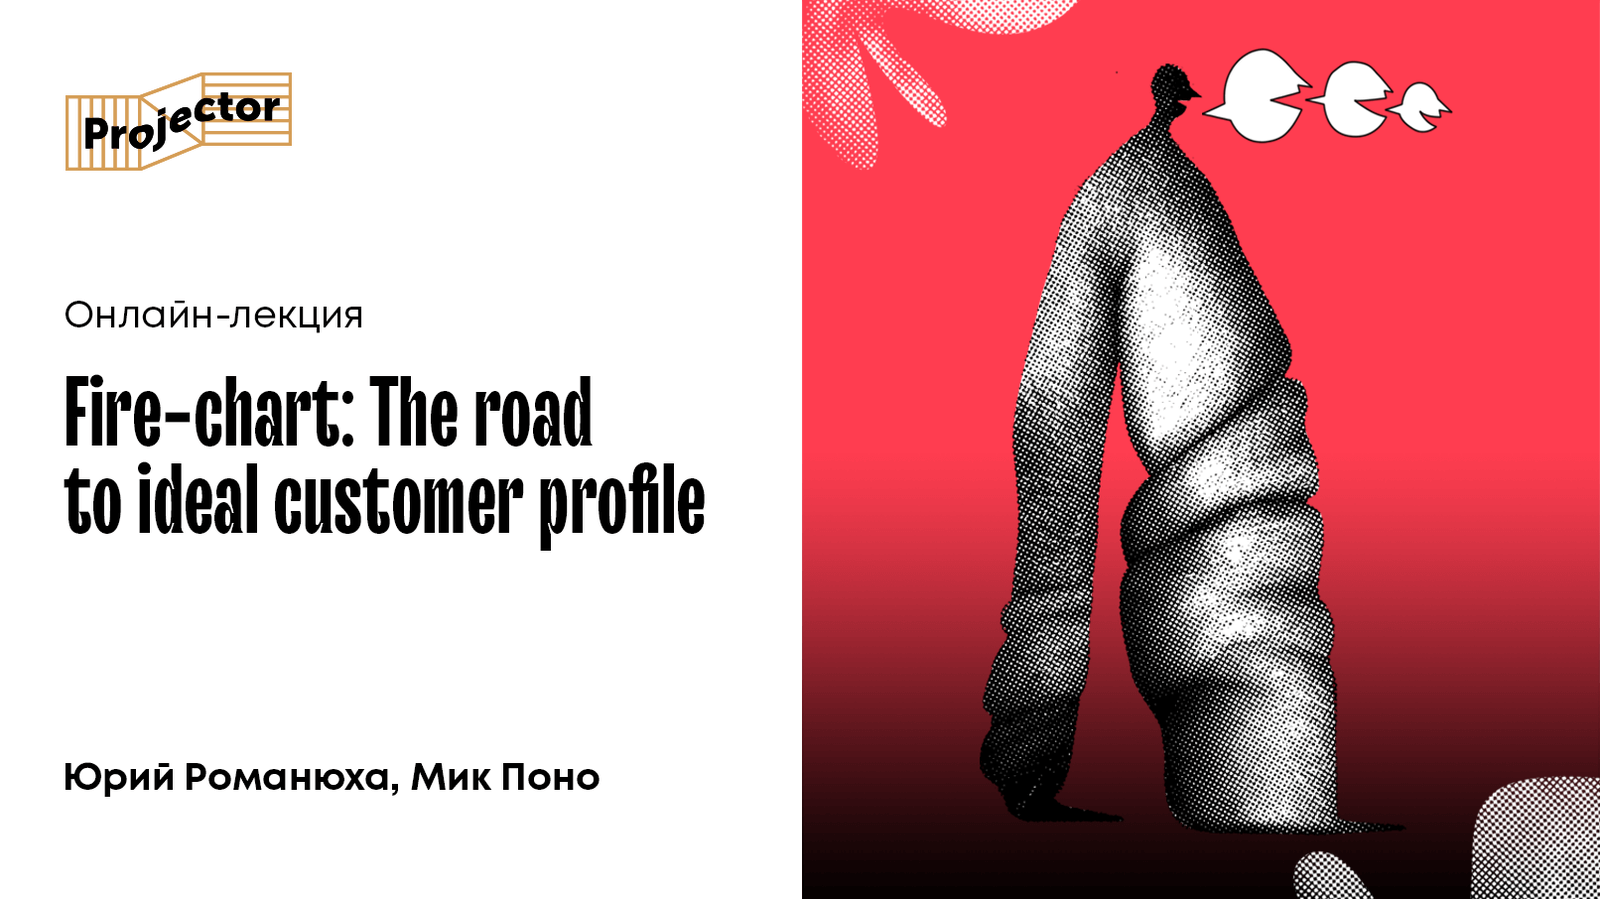 Fire-chart: The road to ideal customer profile